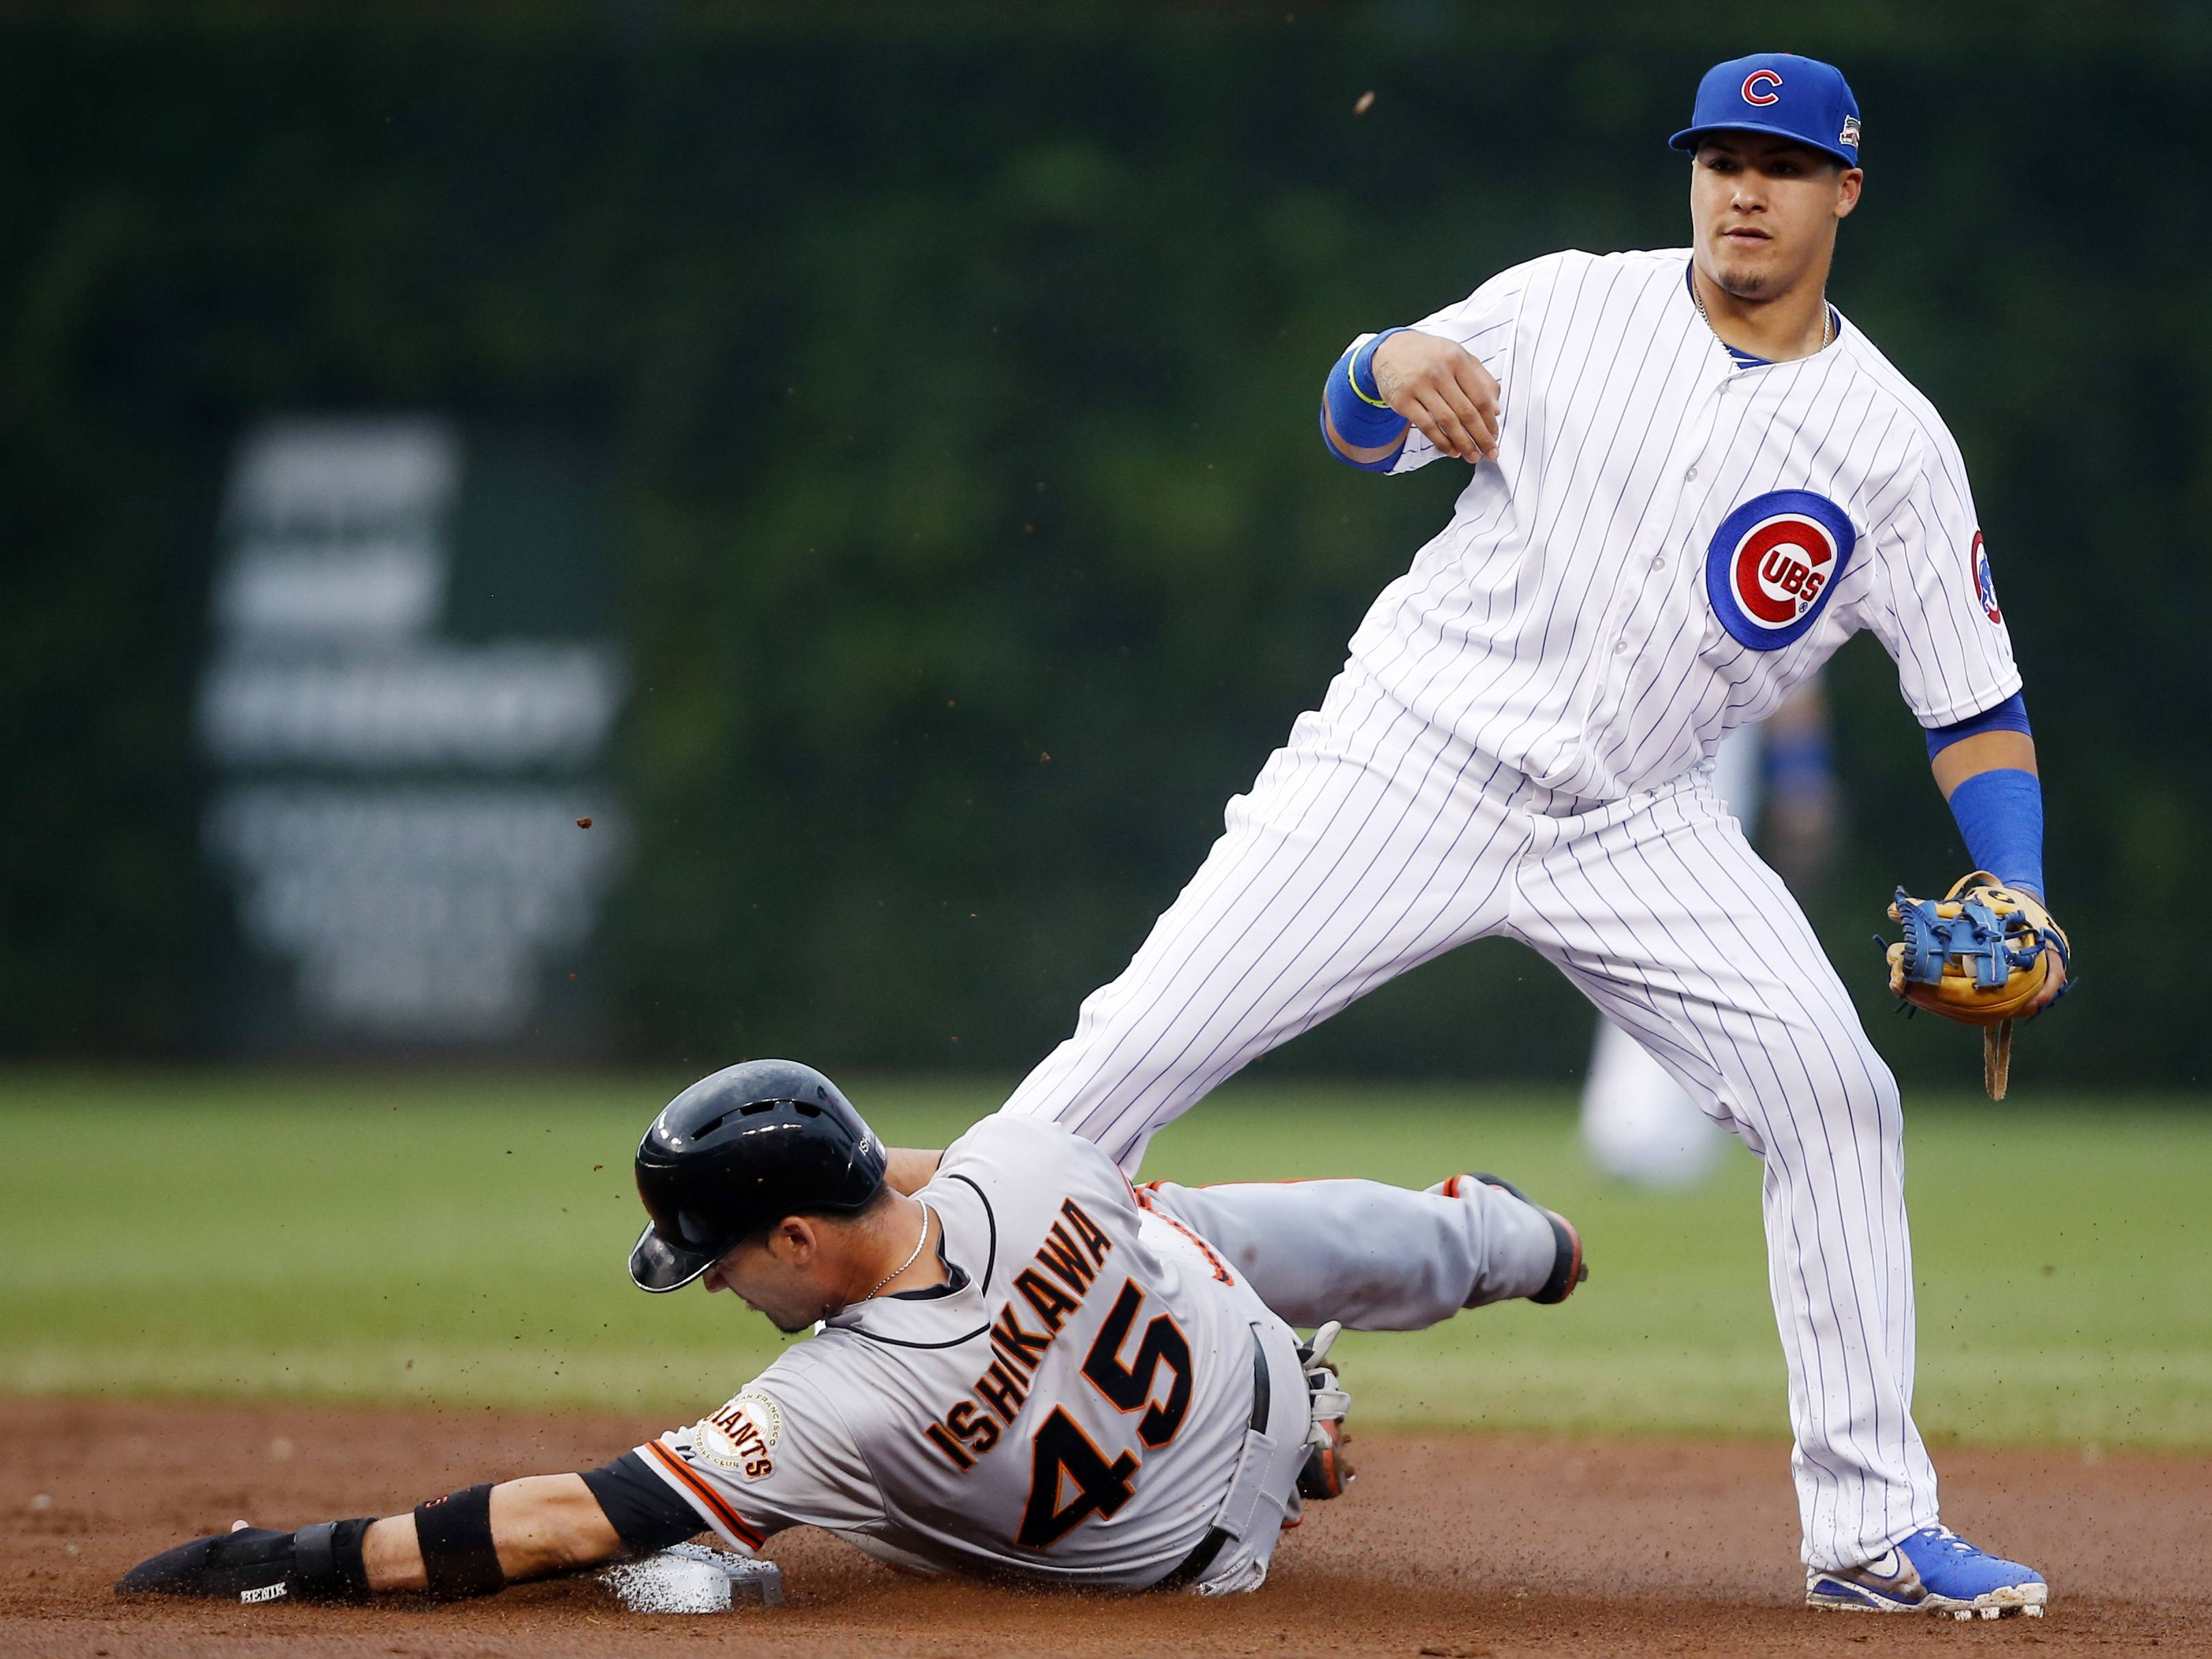 Cubs prevail in suspended game